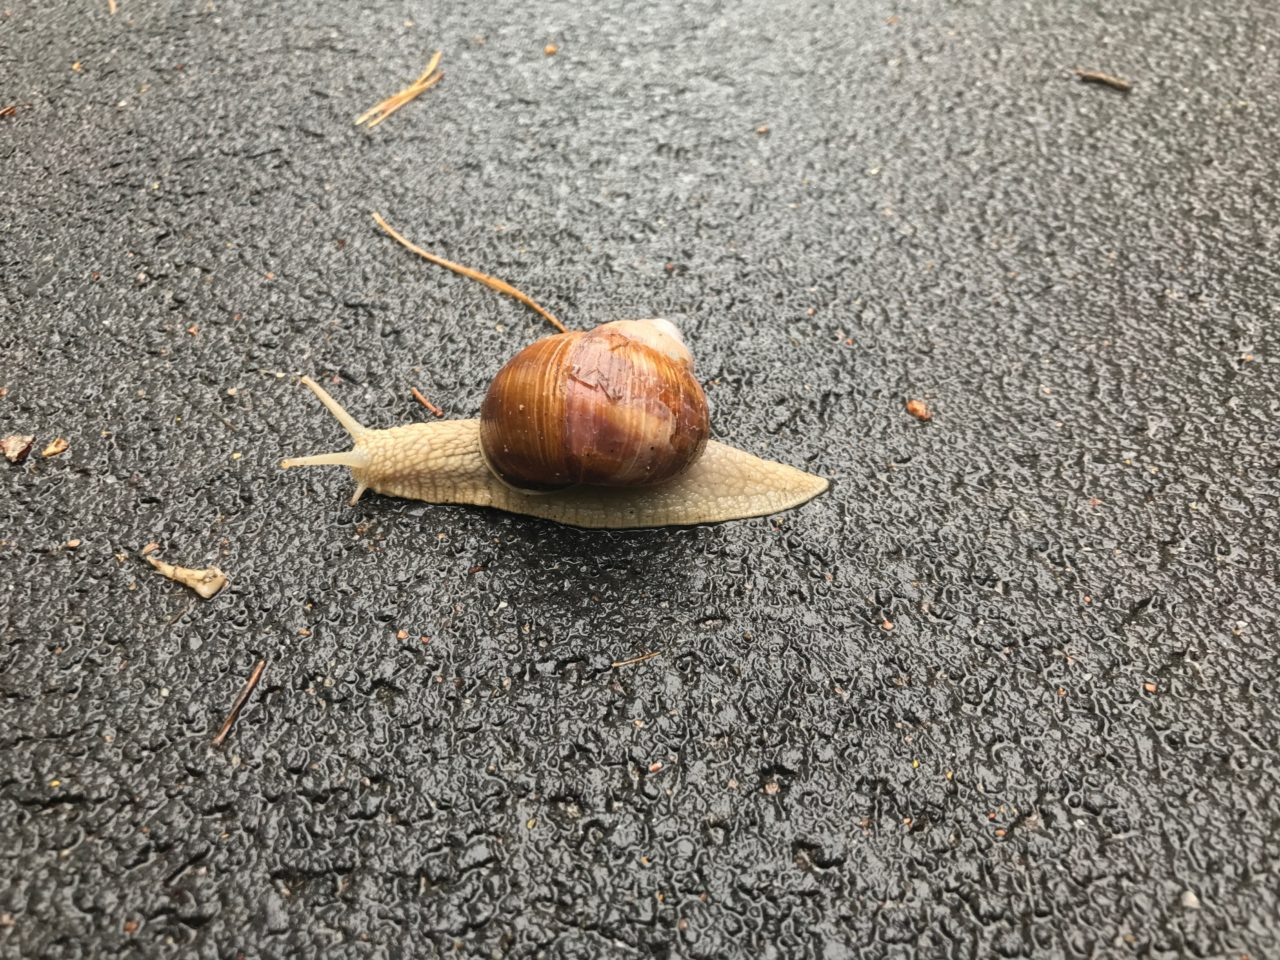 Snail On A Wet Asphalt Road With Conifers Around